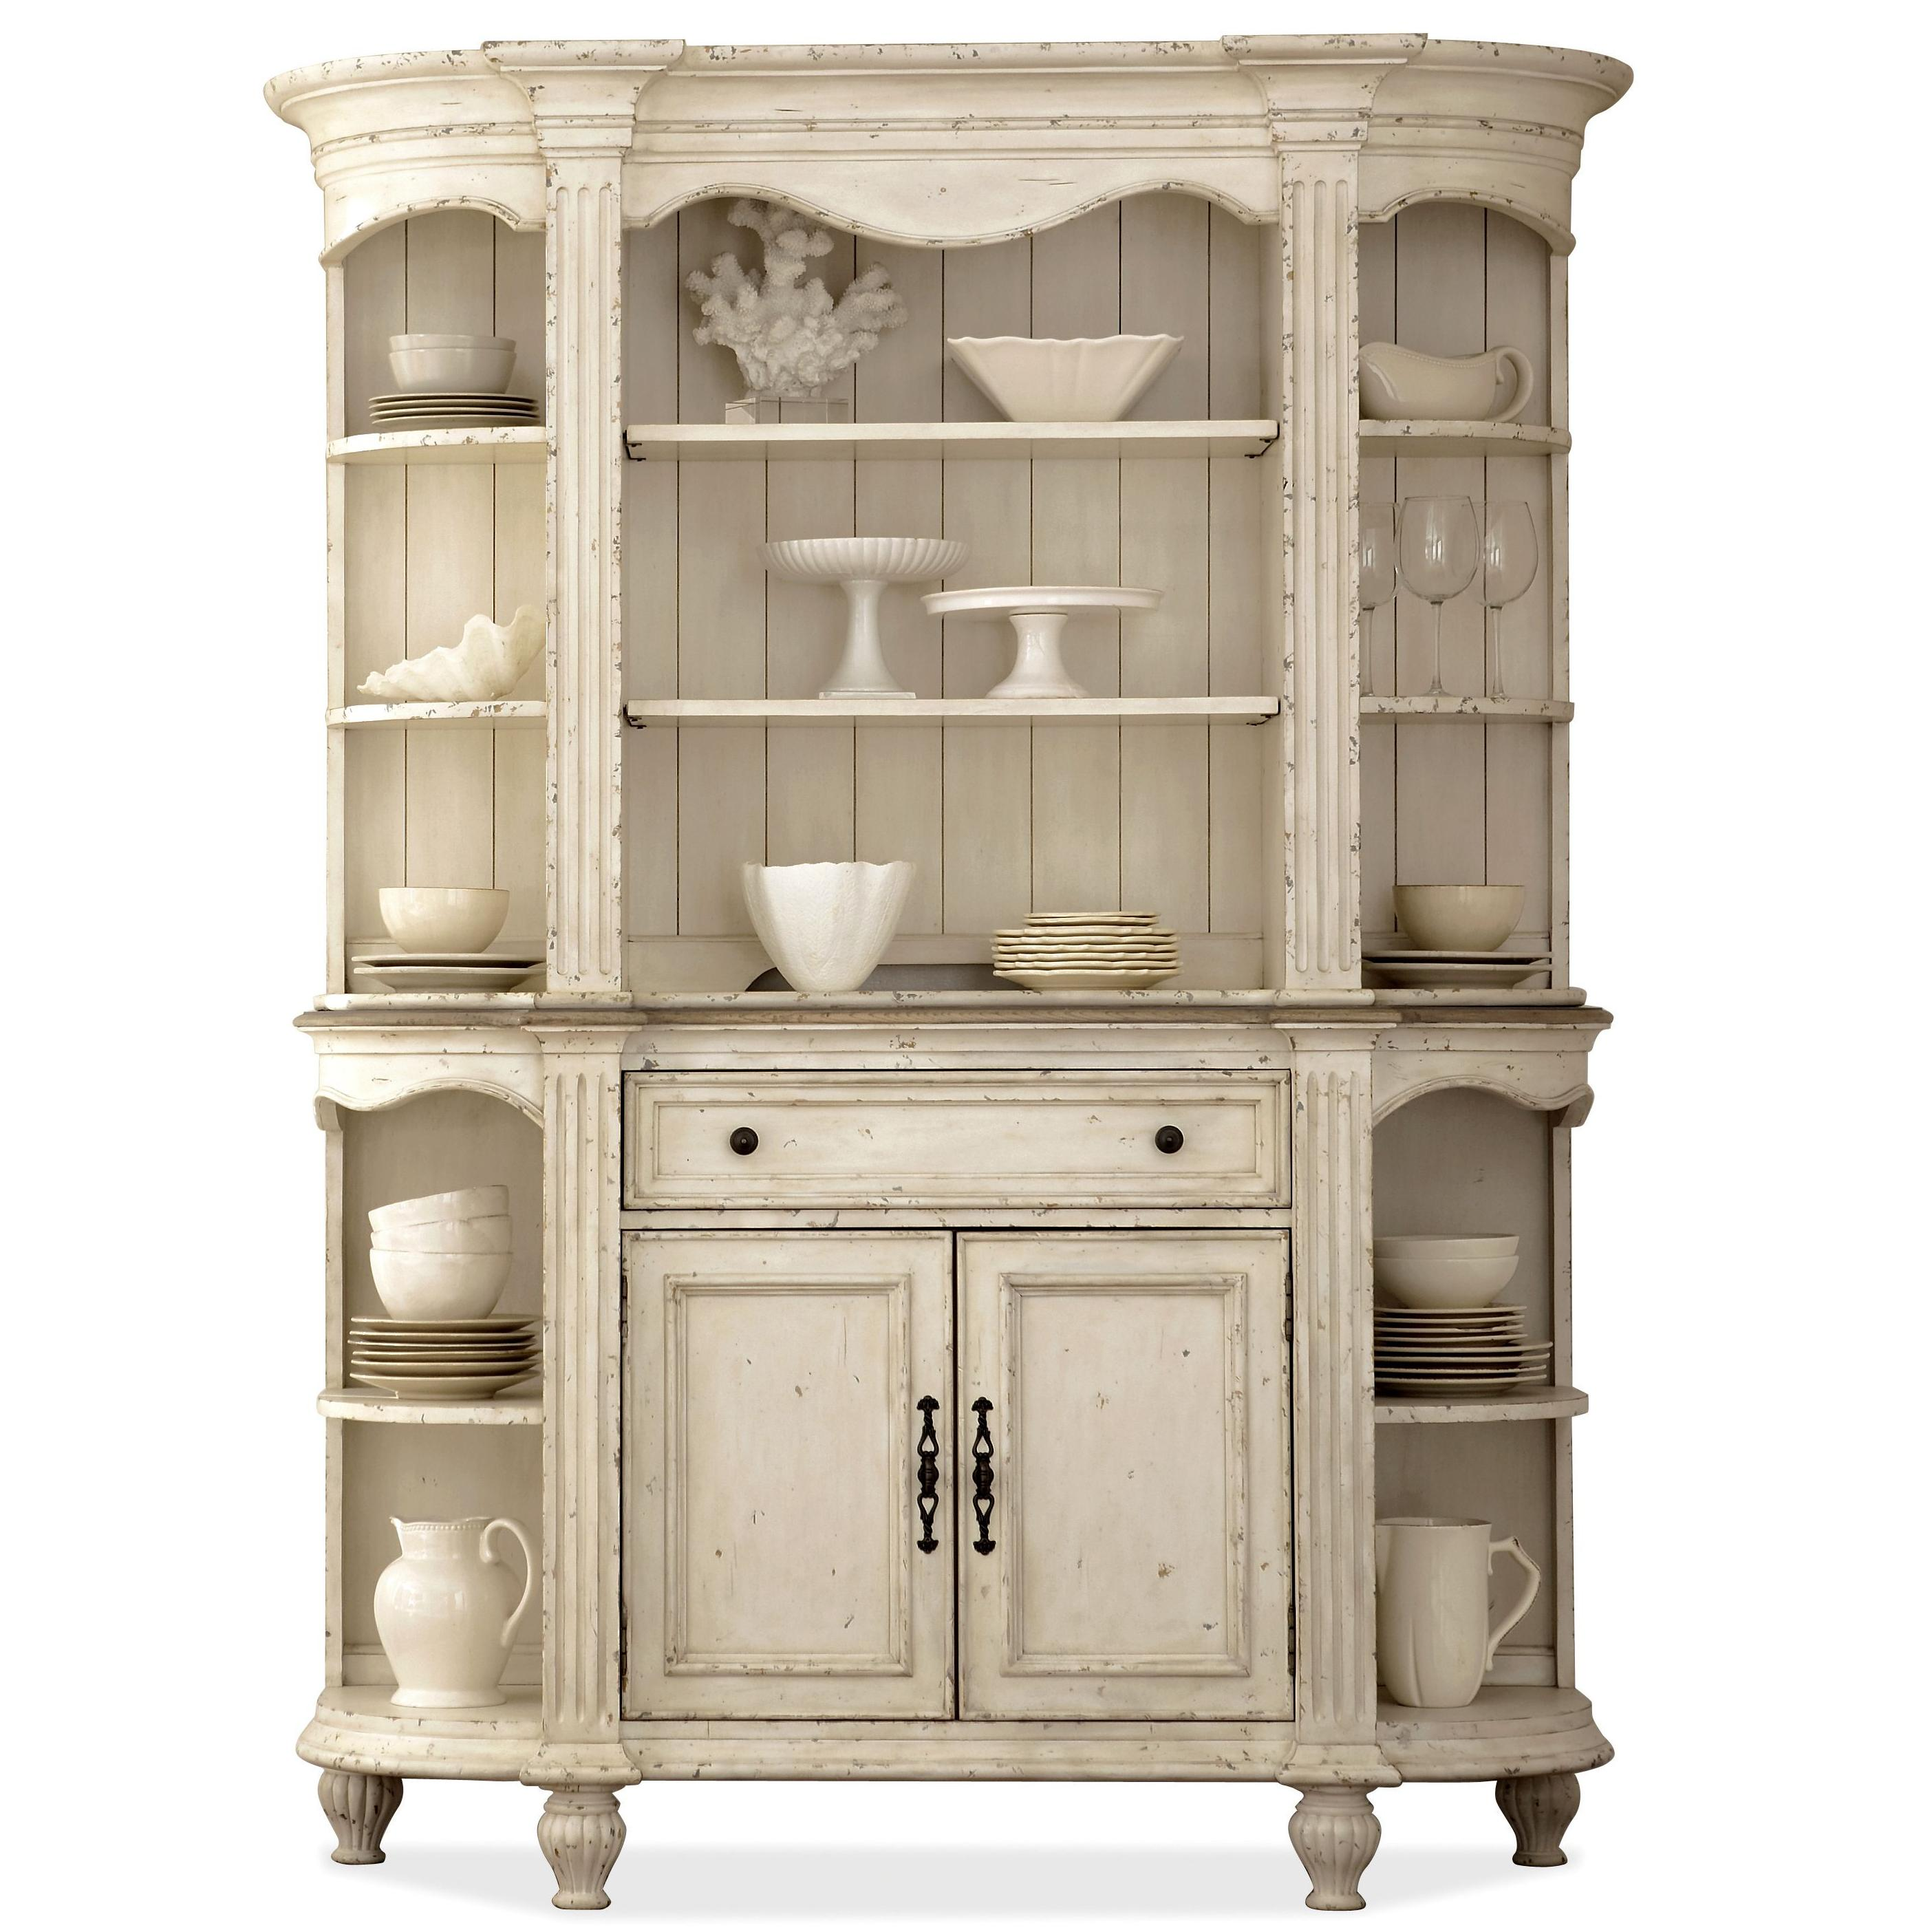 Property Brothers Two Tone Kitchen Cabinets: Riverside Furniture Coventry Two Tone 32556 2 Door Buffet